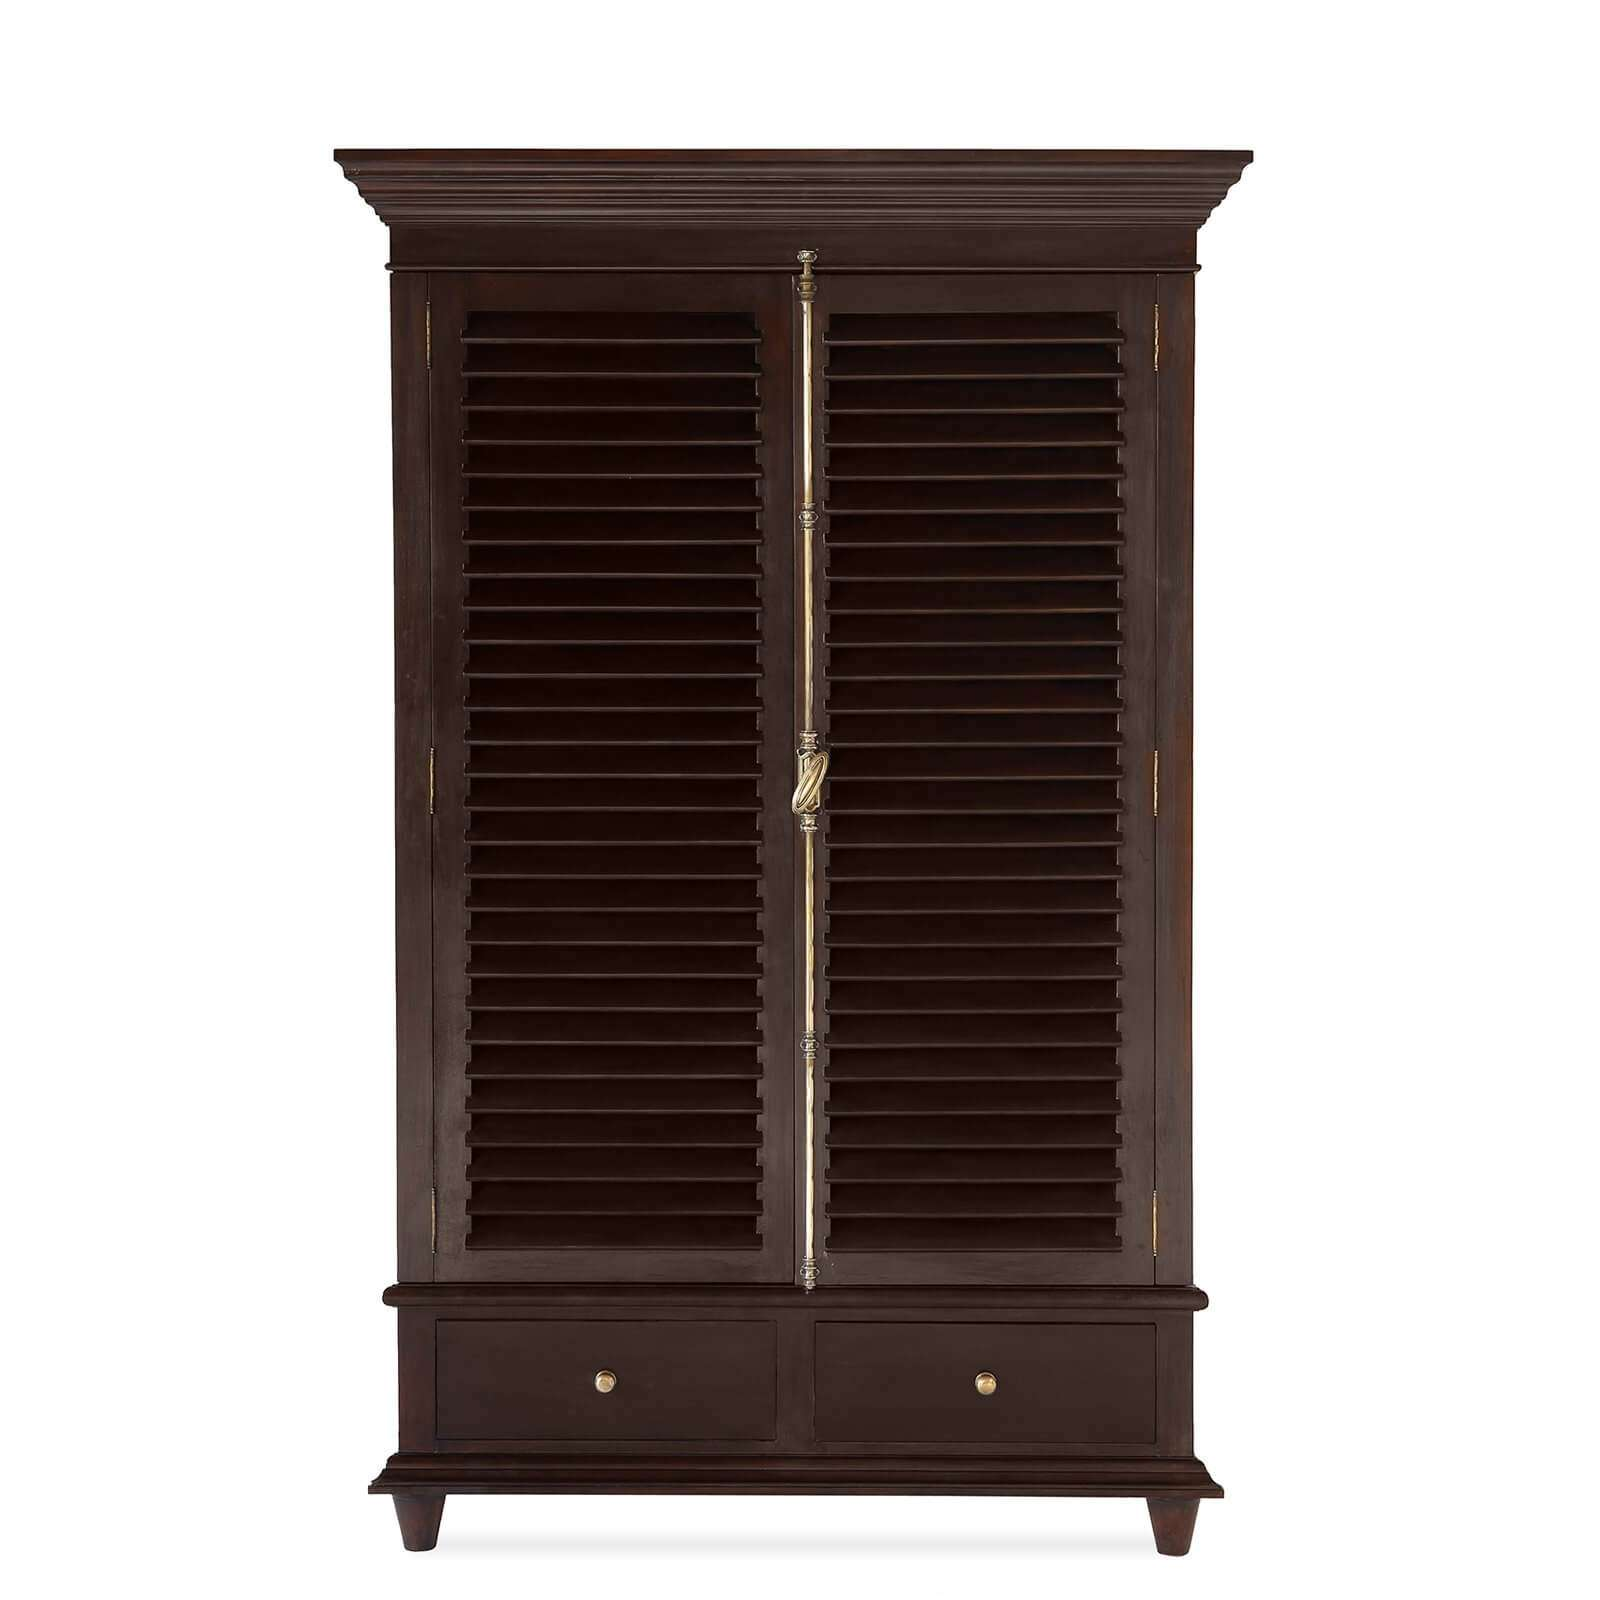 PLANTATION ARMOIRE - STUART MEMBERY HOME COLLECTION